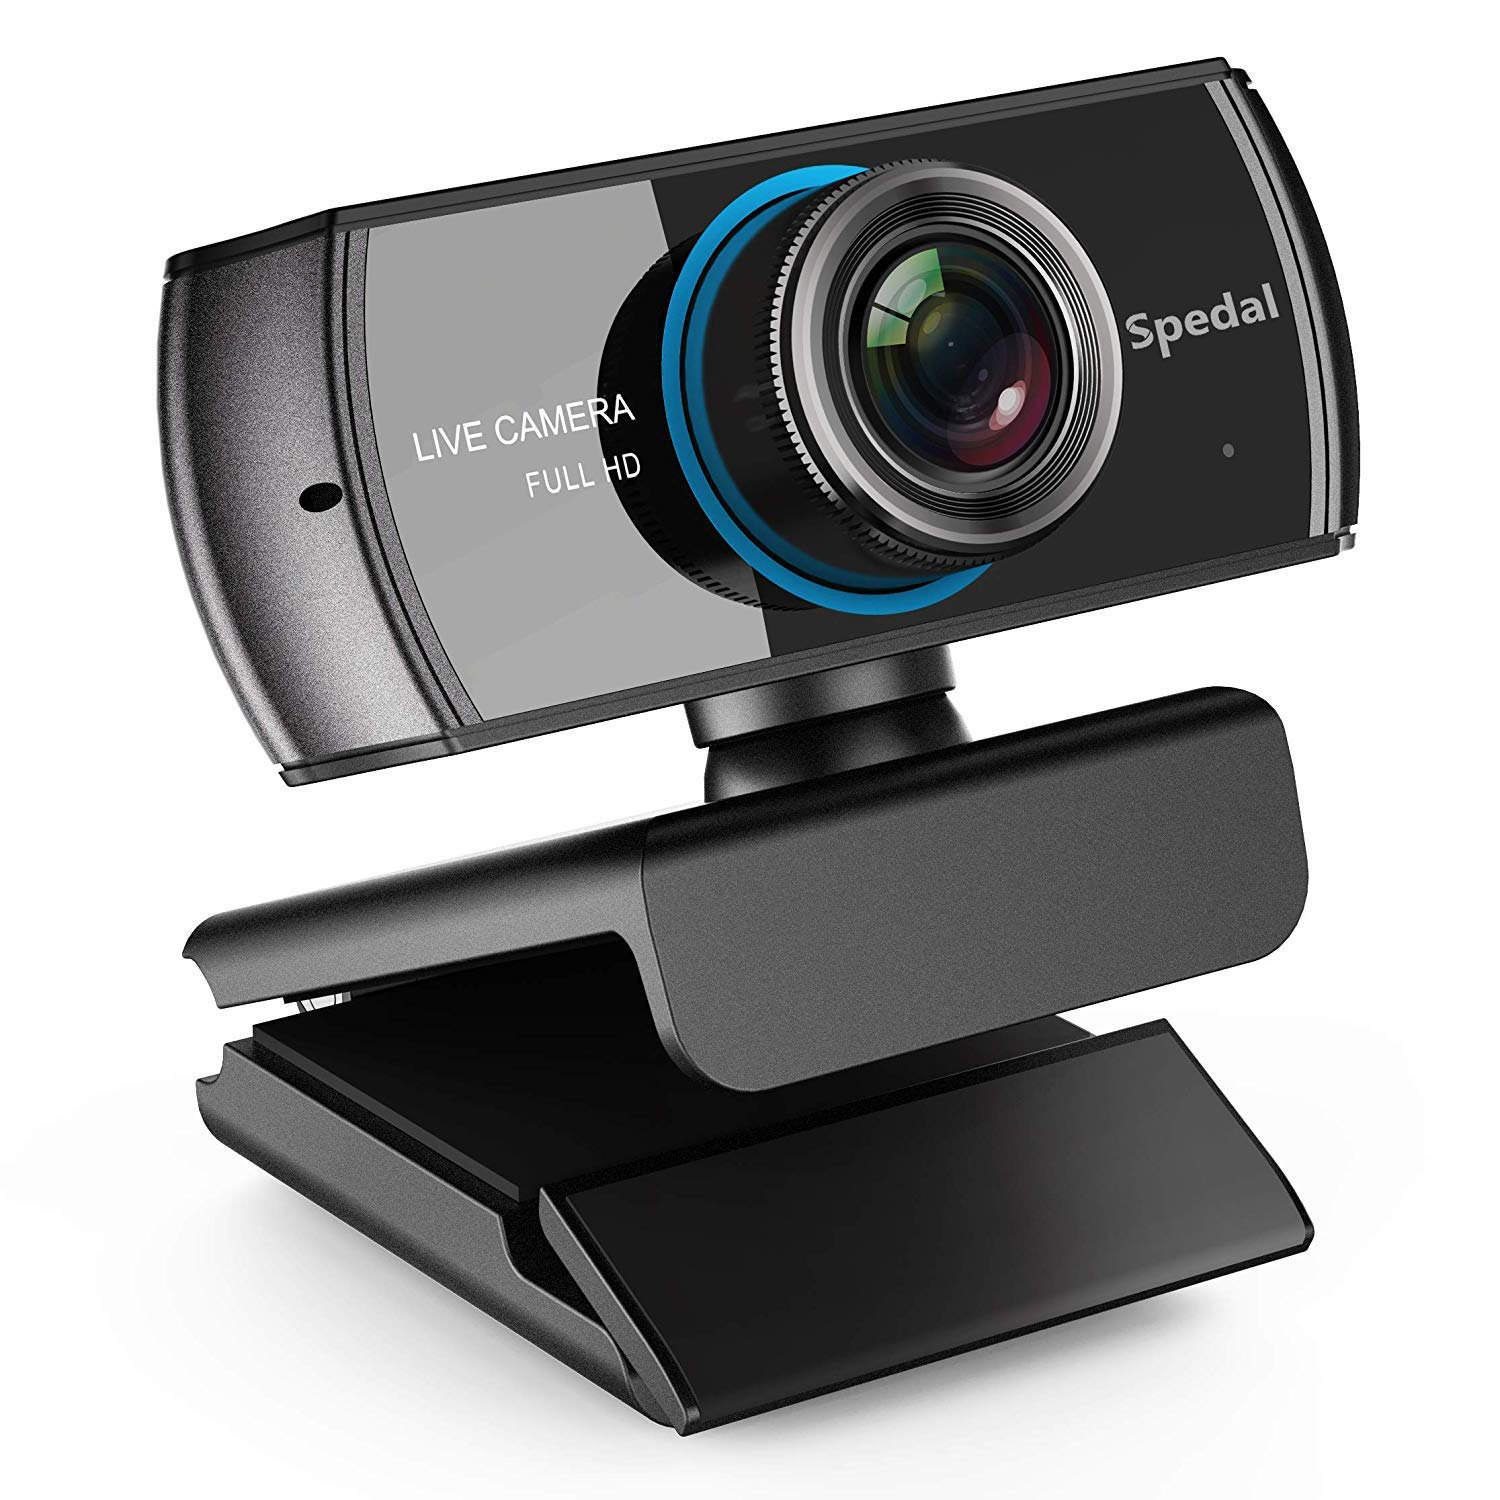 Spedal Full HD Webcam 1536p, Beauty Live Streaming Webcam, Computer Laptop Camera for OBS XSplit Skype Facebook, Compatible for Mac OS Windows 10/8/7